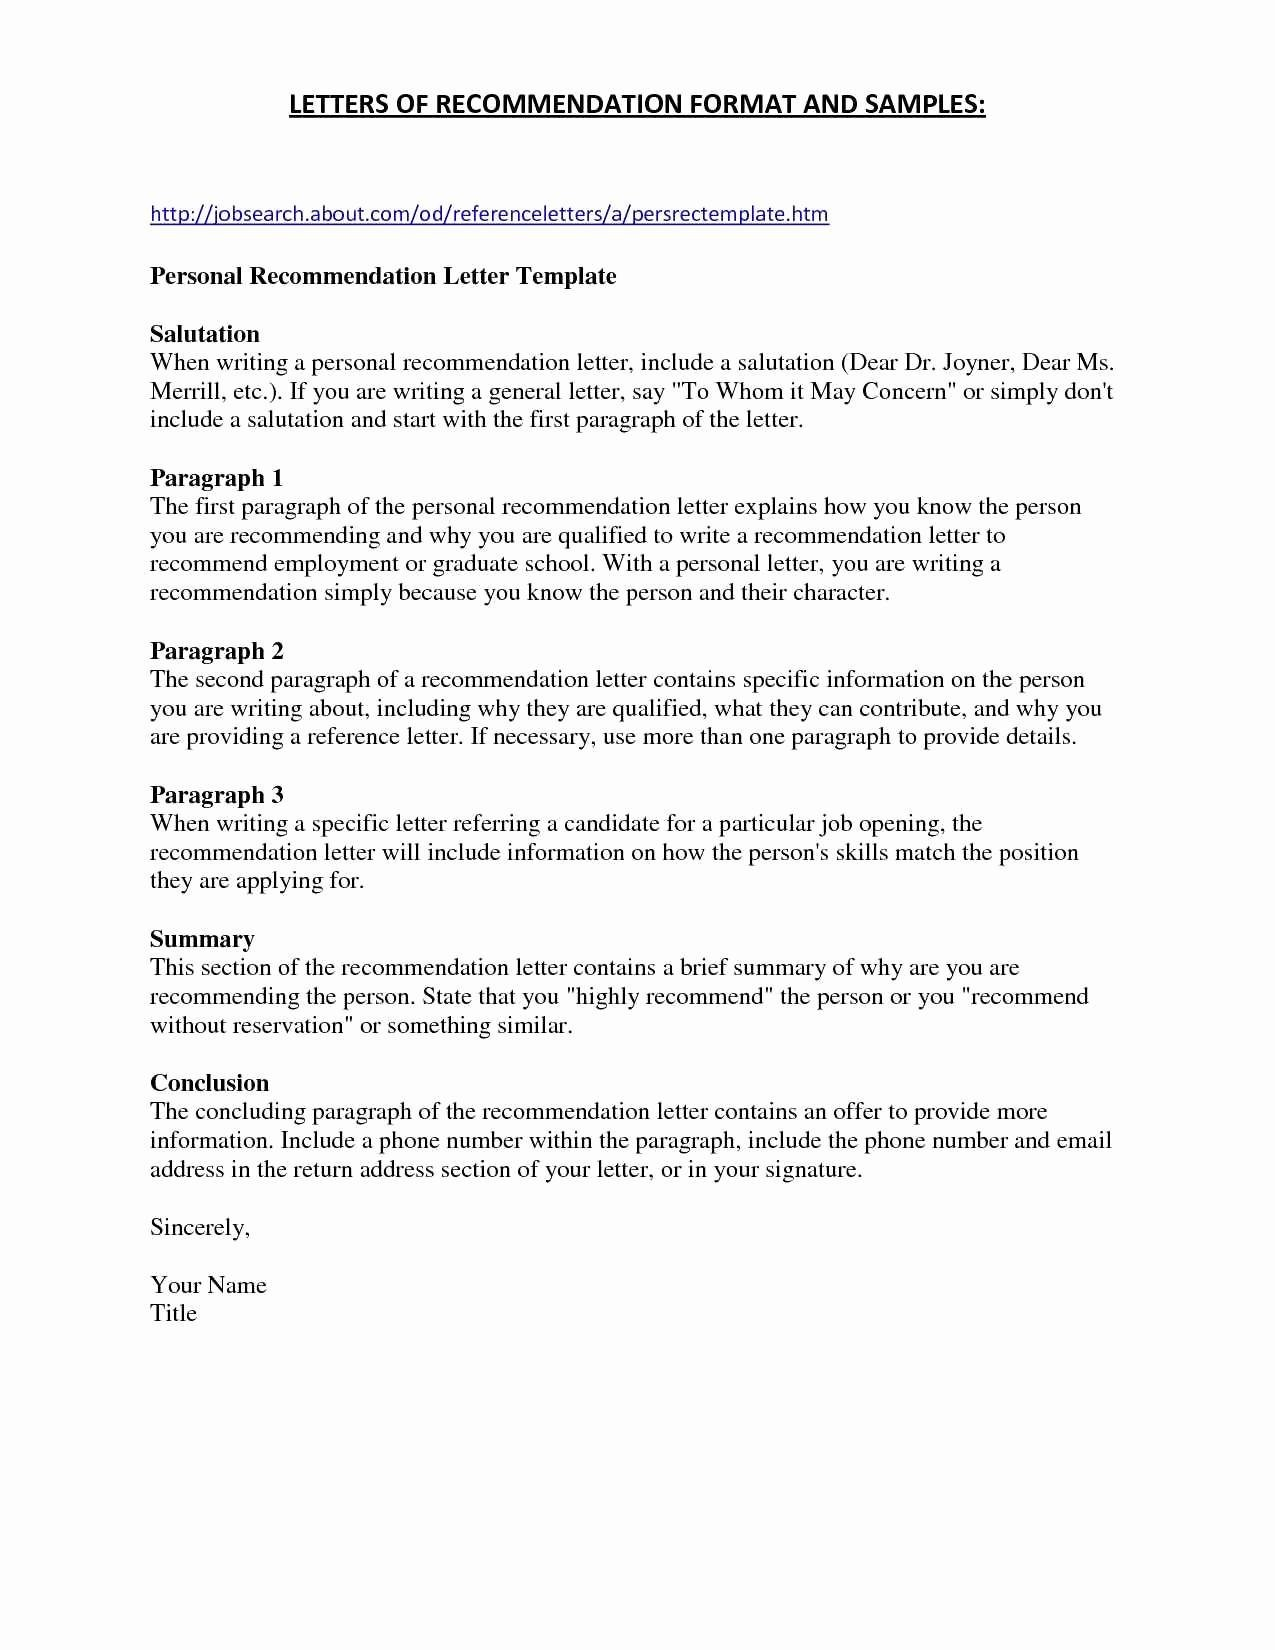 Personal Cover Letter Template - Cover Letter to Consultant for Job Best New Job Fer Letter Template